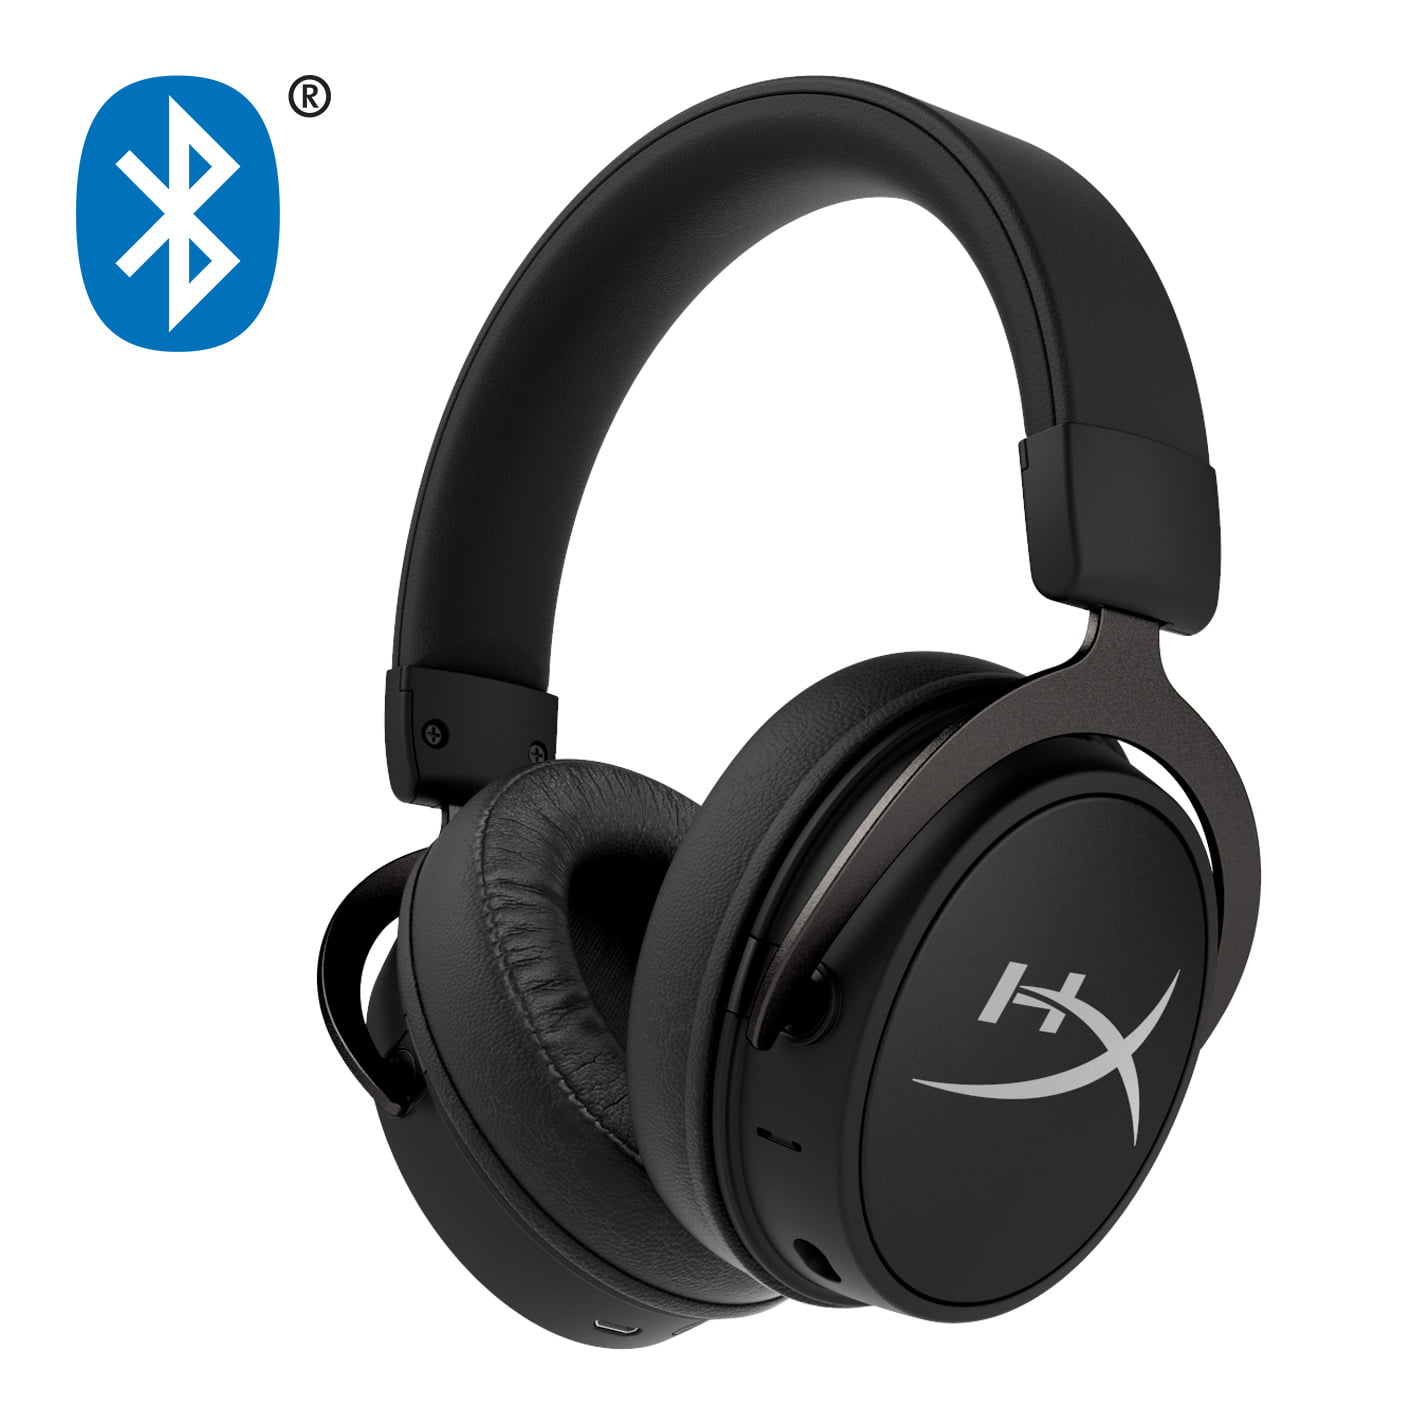 Hyperx Cloud Mix Wired Gaming Headset Bluetooth Walmart Com Walmart Com